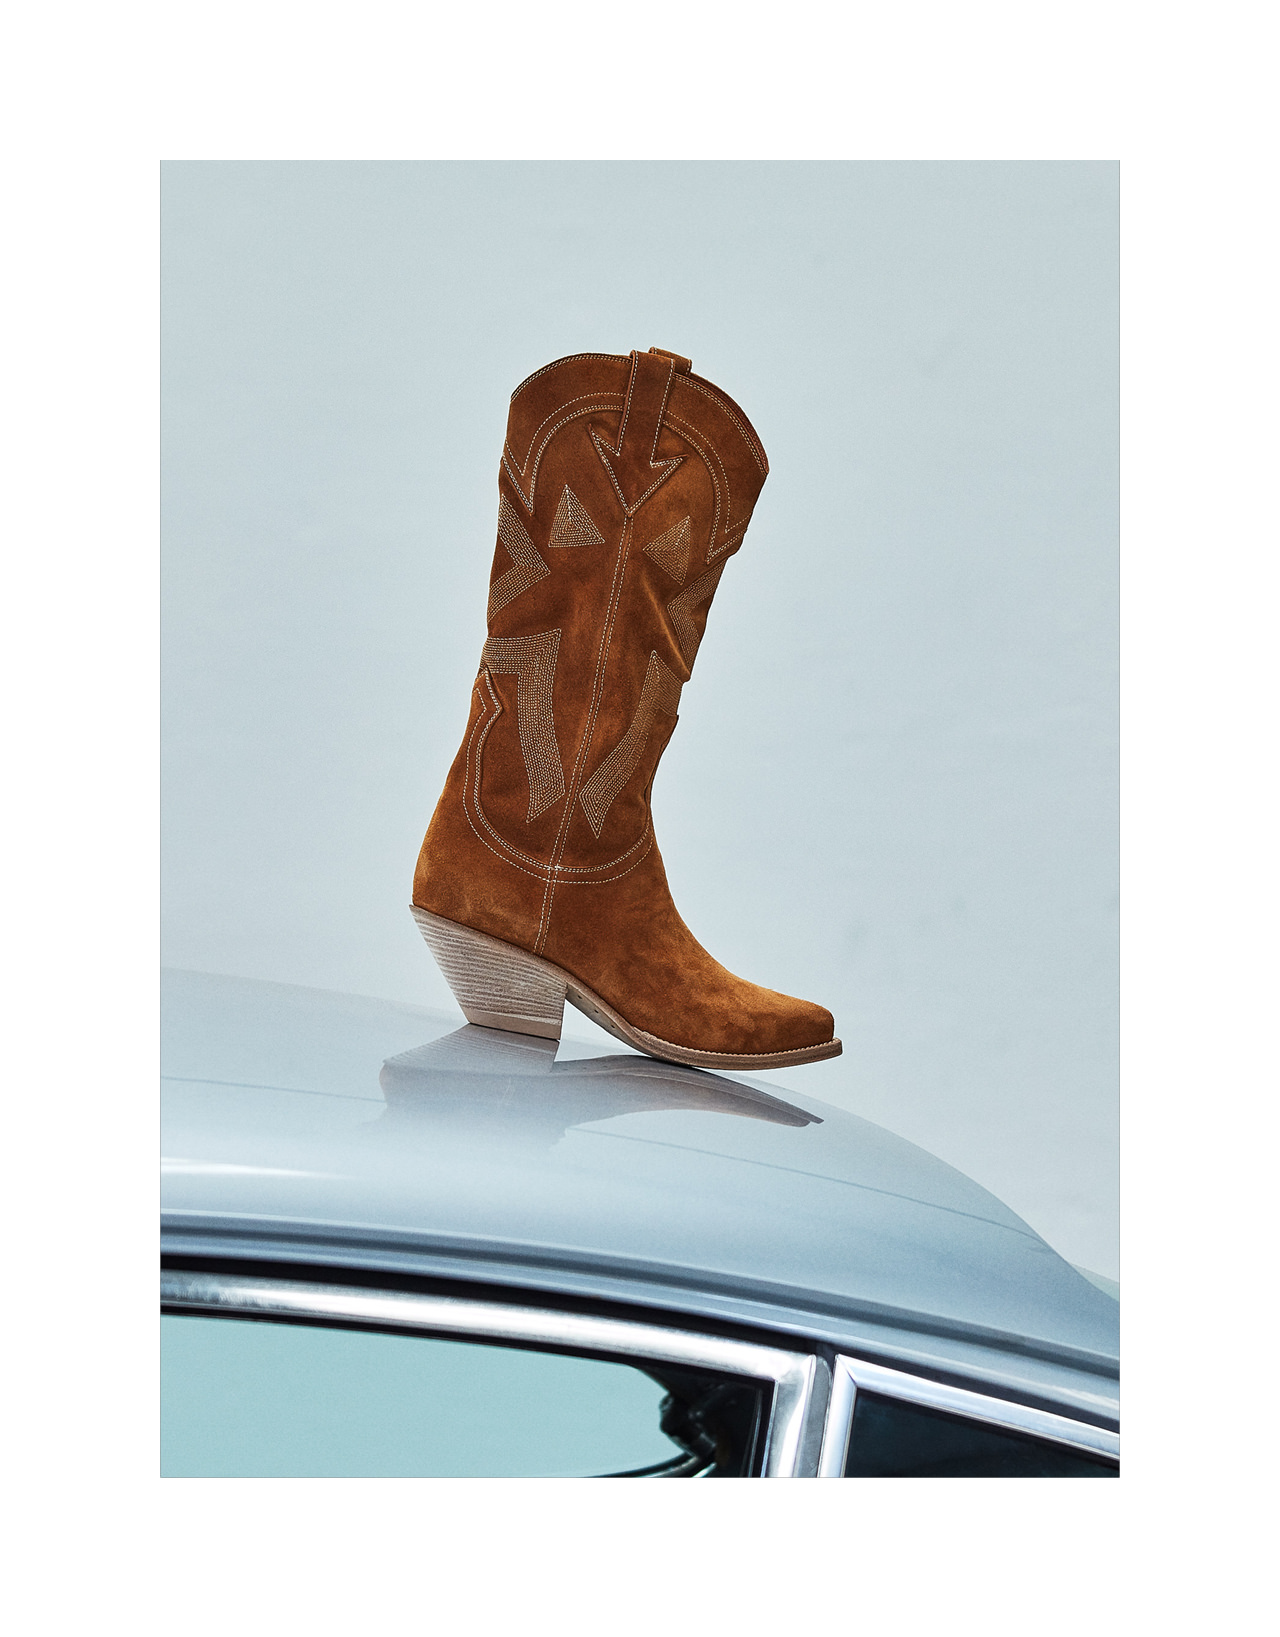 ELISE HIGH HEEL DURANGO BOOTS IN COPPER BROWN SUEDE